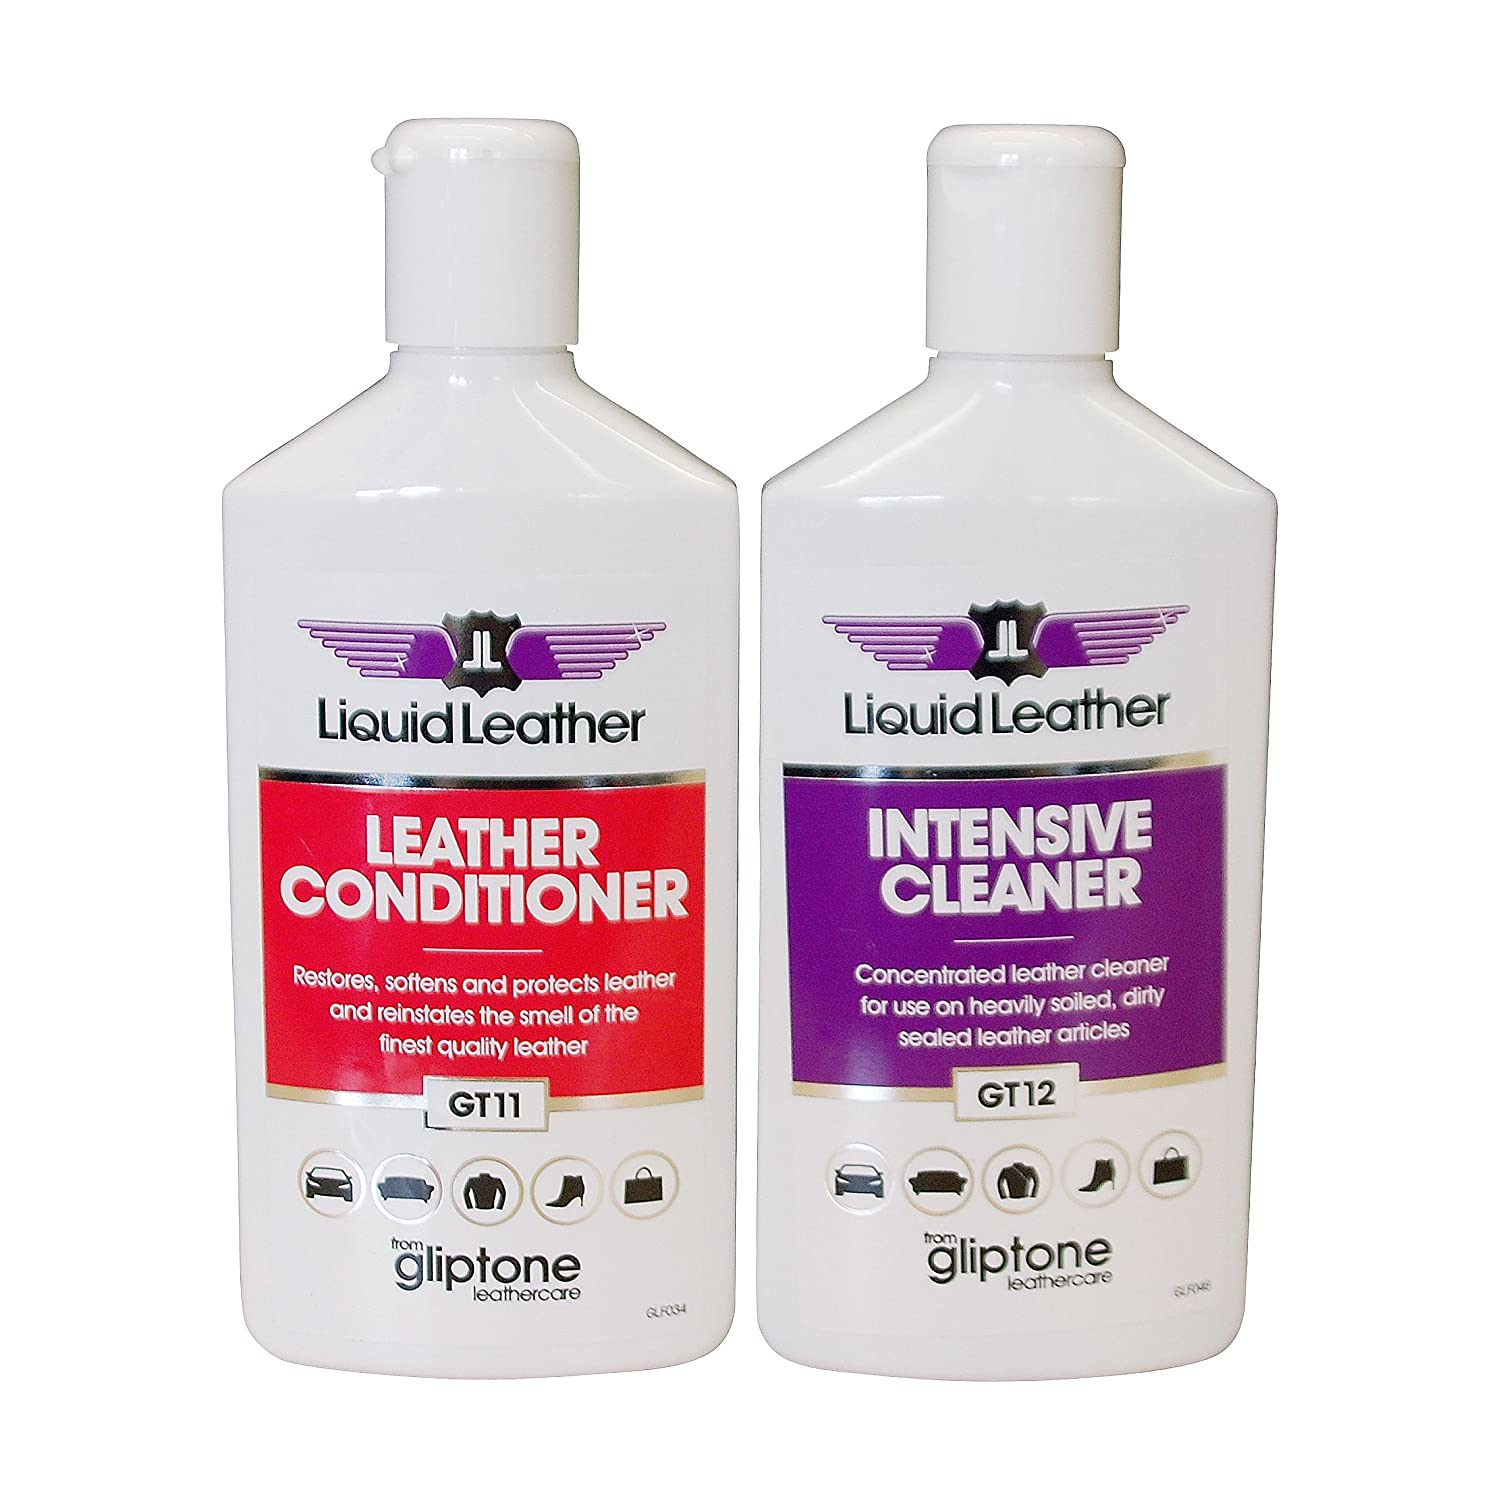 GT11+GT12 Liquid Leather Intensive Cleaner Plus Leather Conditioner 250ml Per Bottle Gliptone